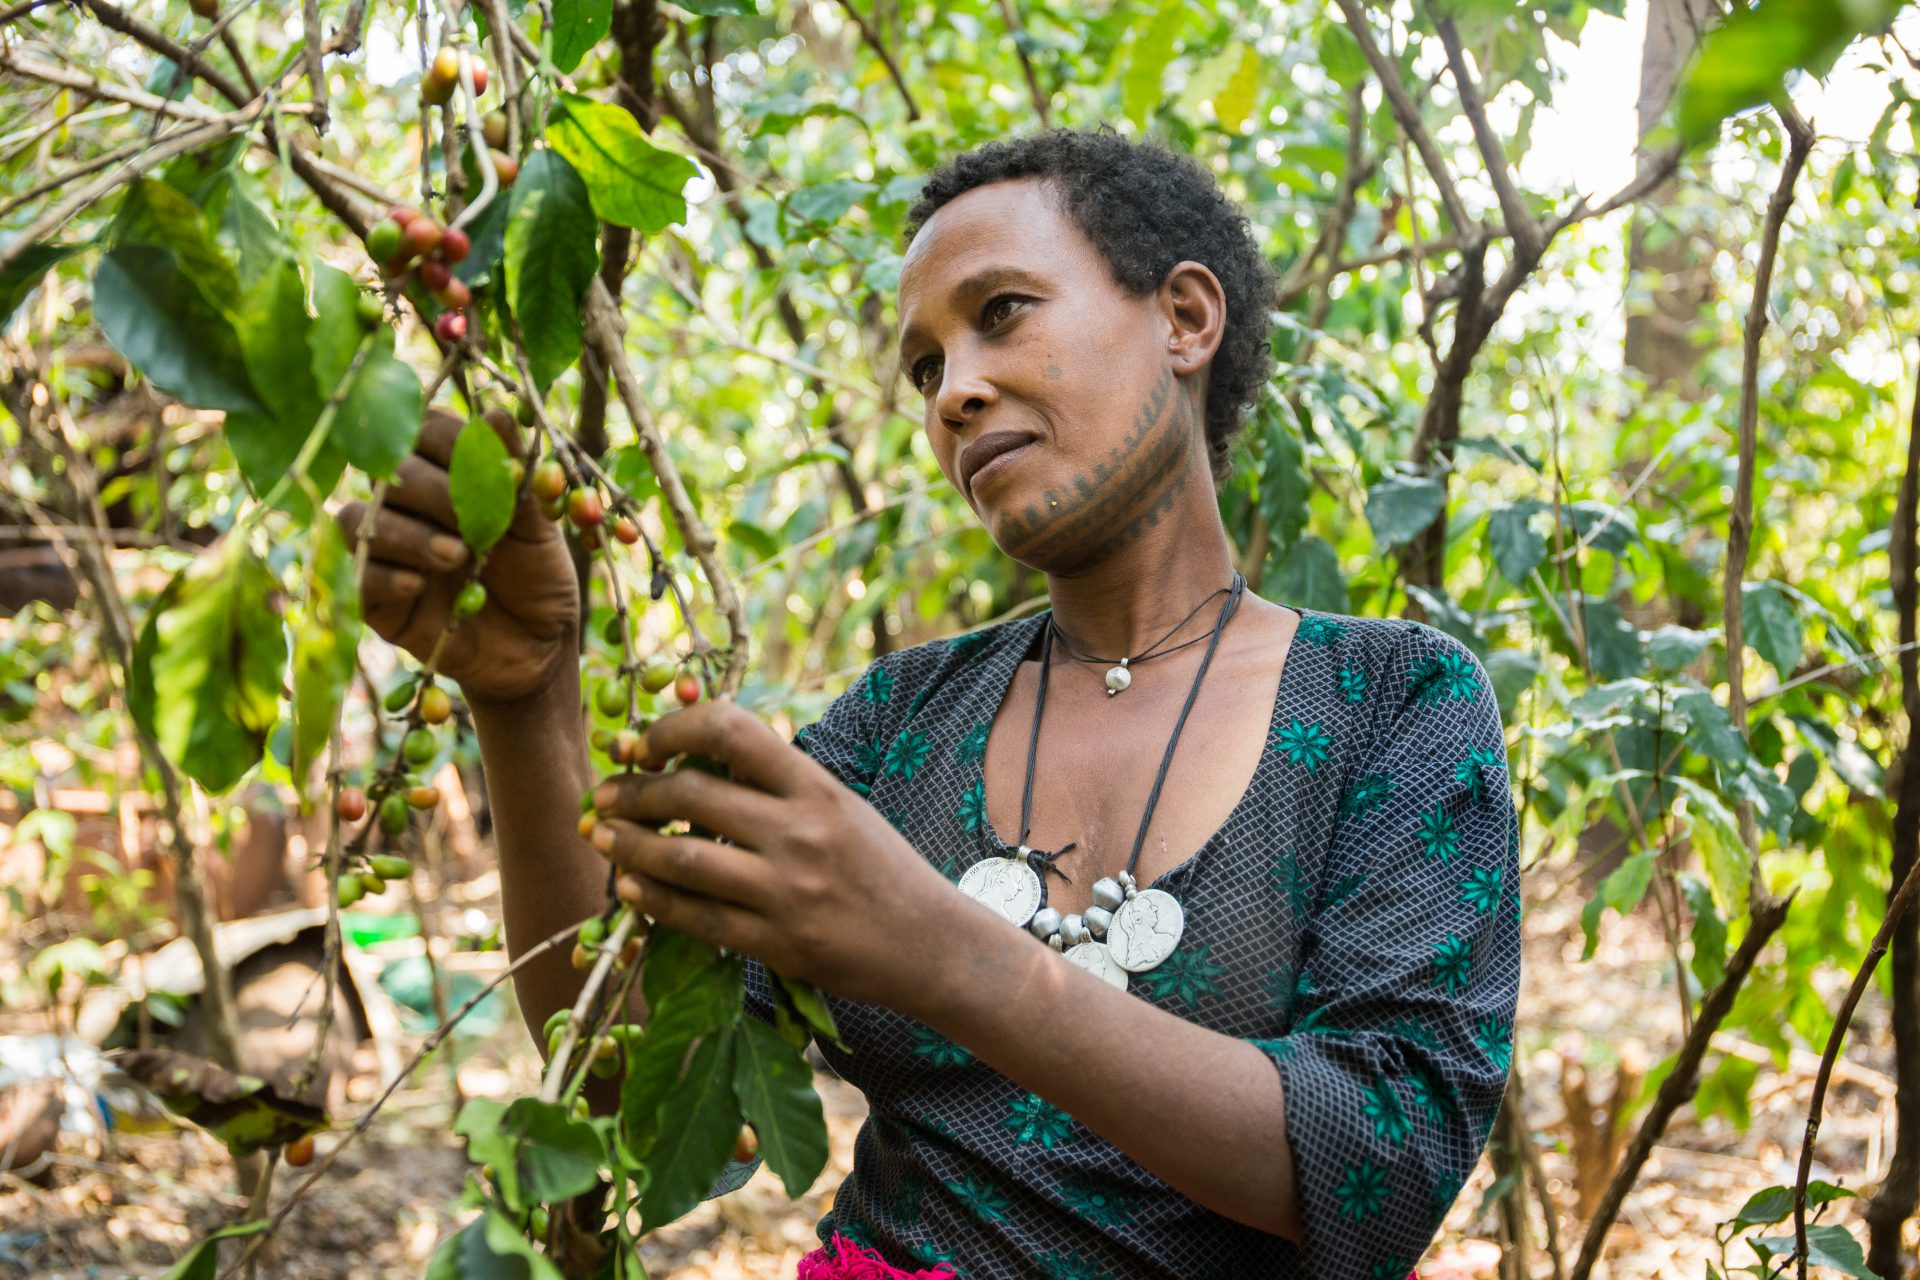 Zimam Fettene, 25, picking coffee at her farm in Woyinima village, West Gojjam, Ethiopia. ©WaterAid/Genaye Eshetu